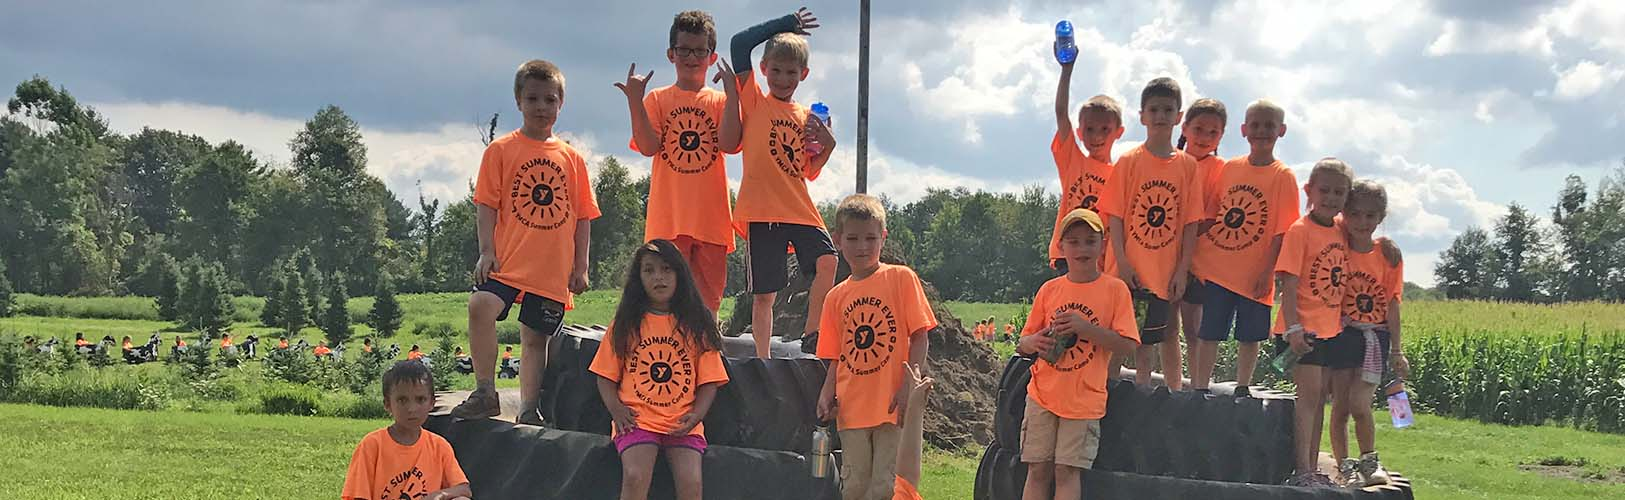 Kids in orange shirts on tire mountain